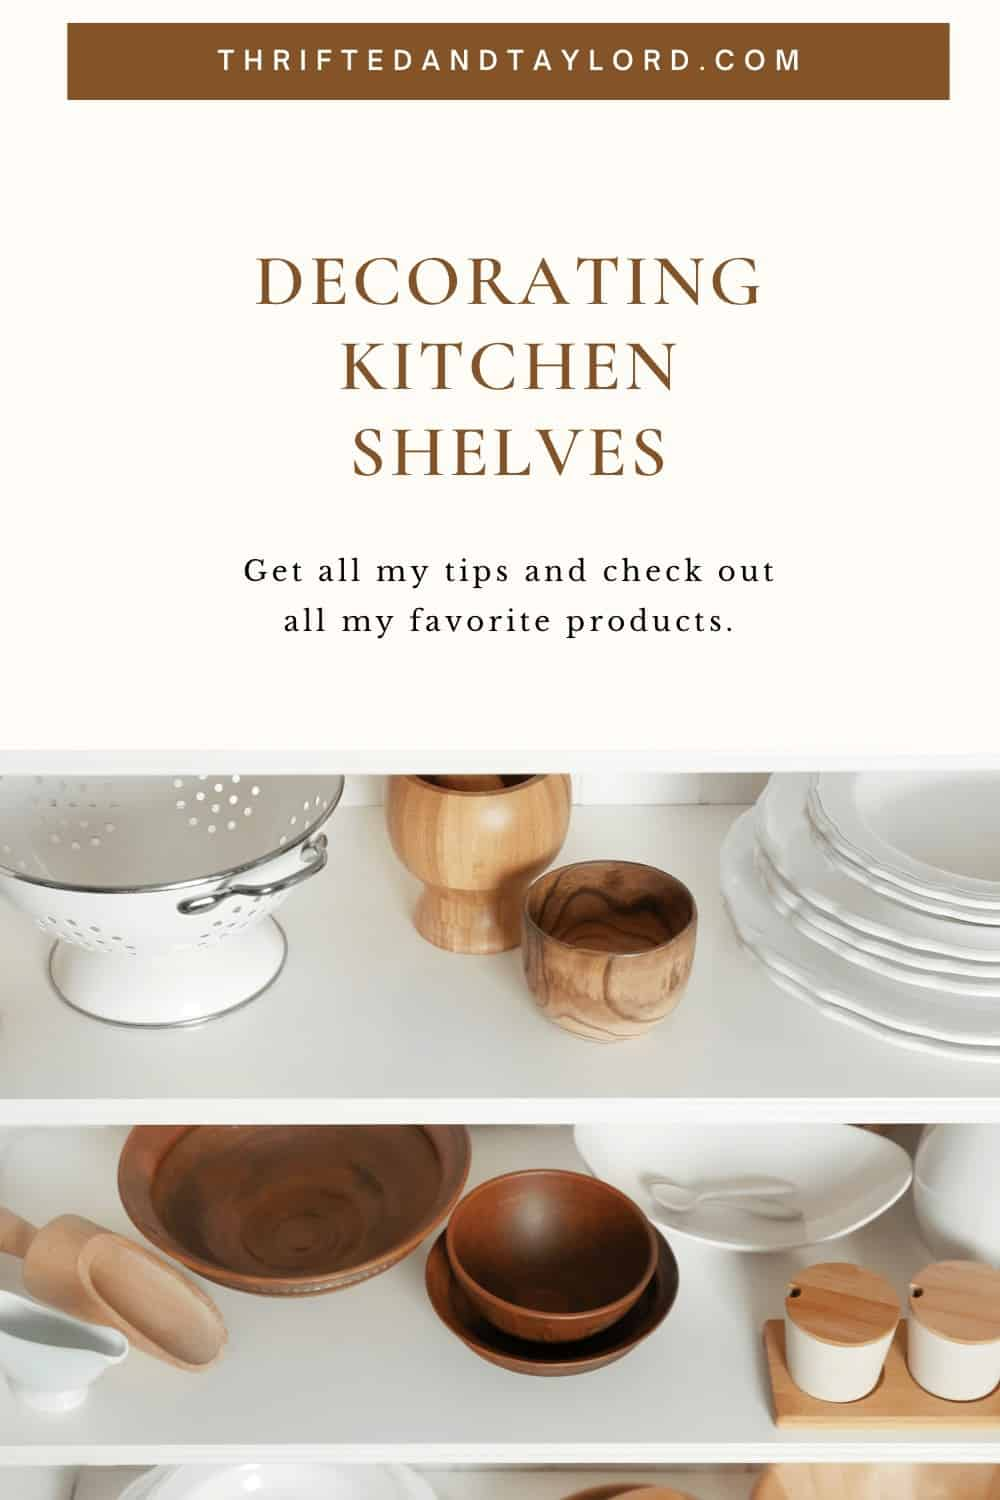 Decorating Kitchen Shelves |  My Best Tips and Favorite Products